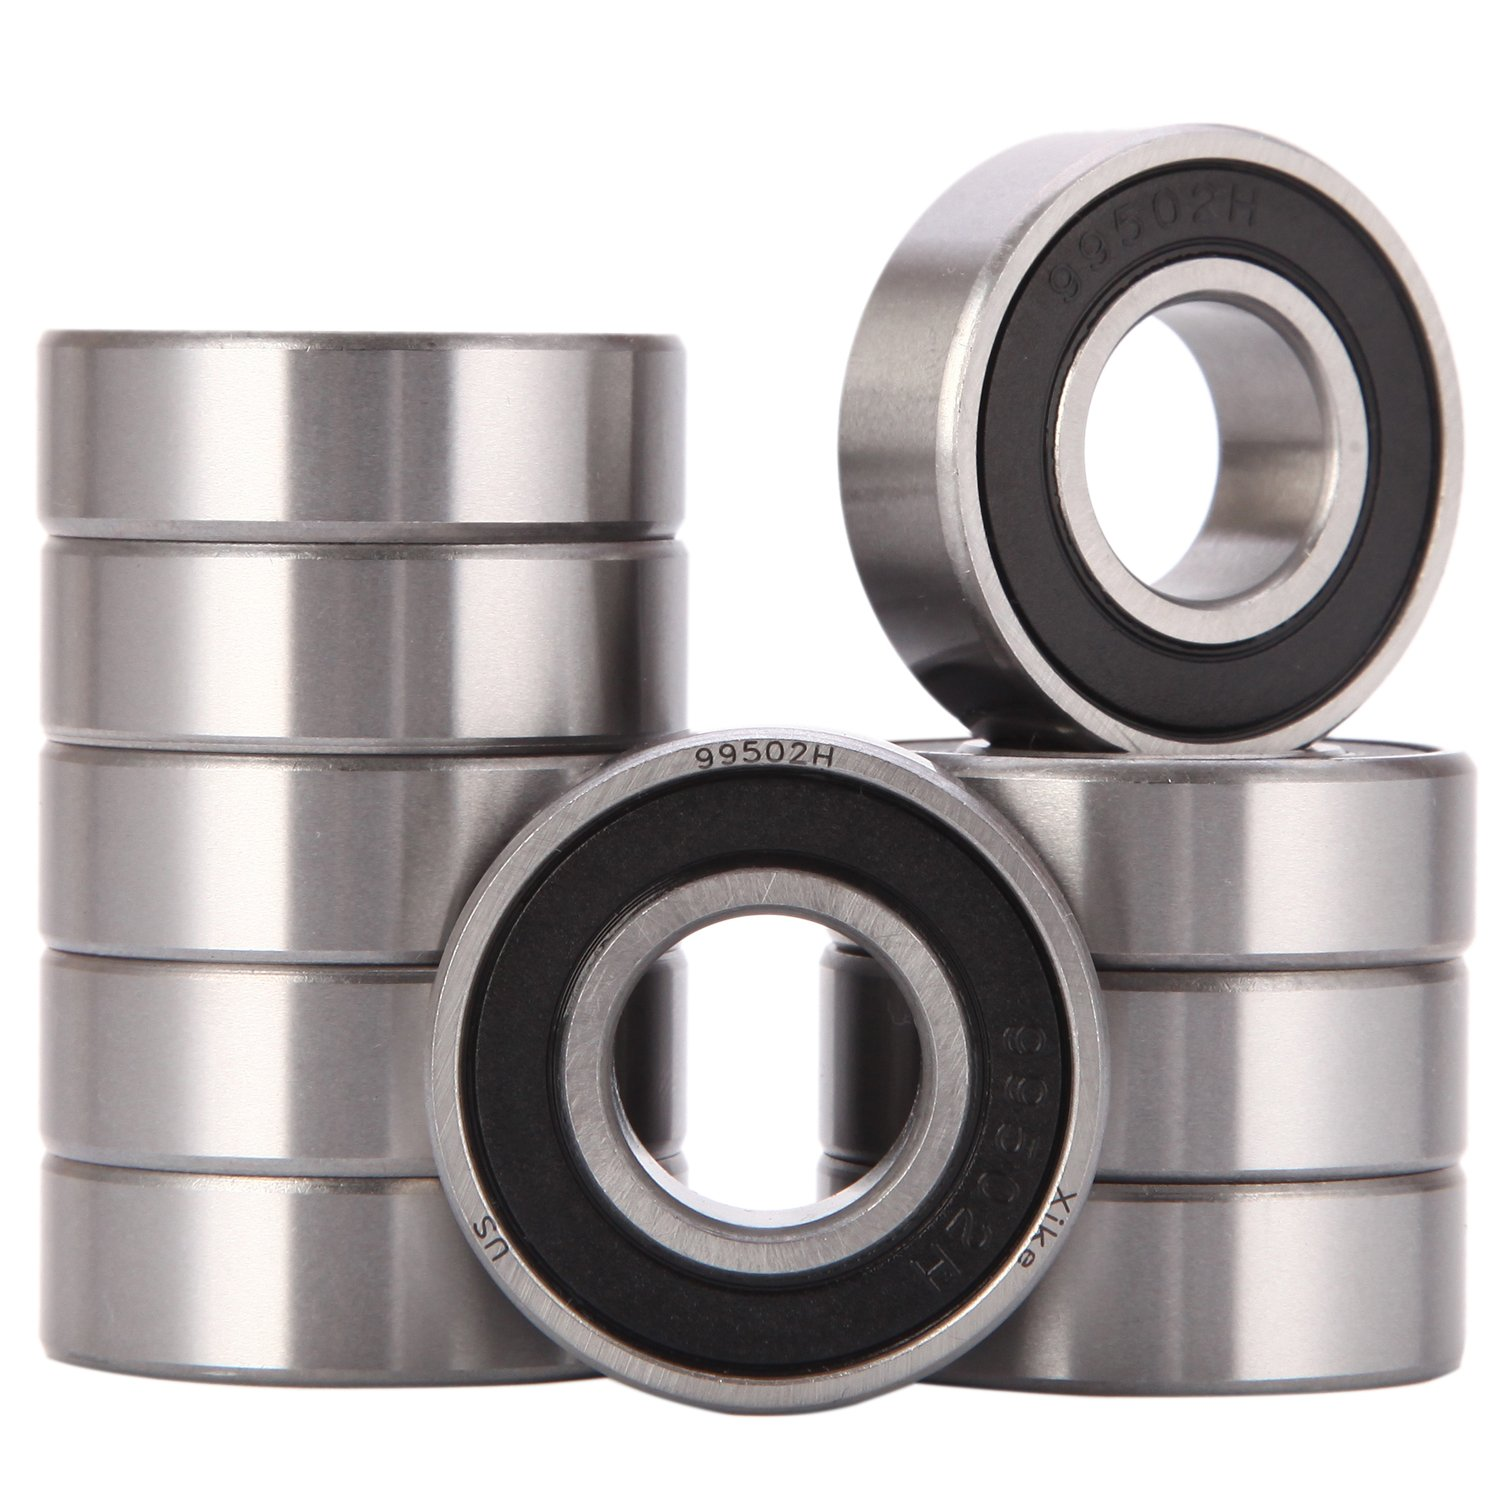 XiKe 10 Pack 99502H or 1623-2RS Bearings 5/8'' x 1-3/8'' x 7/16'' inch, Stable Performance and Cost-Effective, Double Seal and Pre-Lubricated, Deep Groove Ball Bearings.